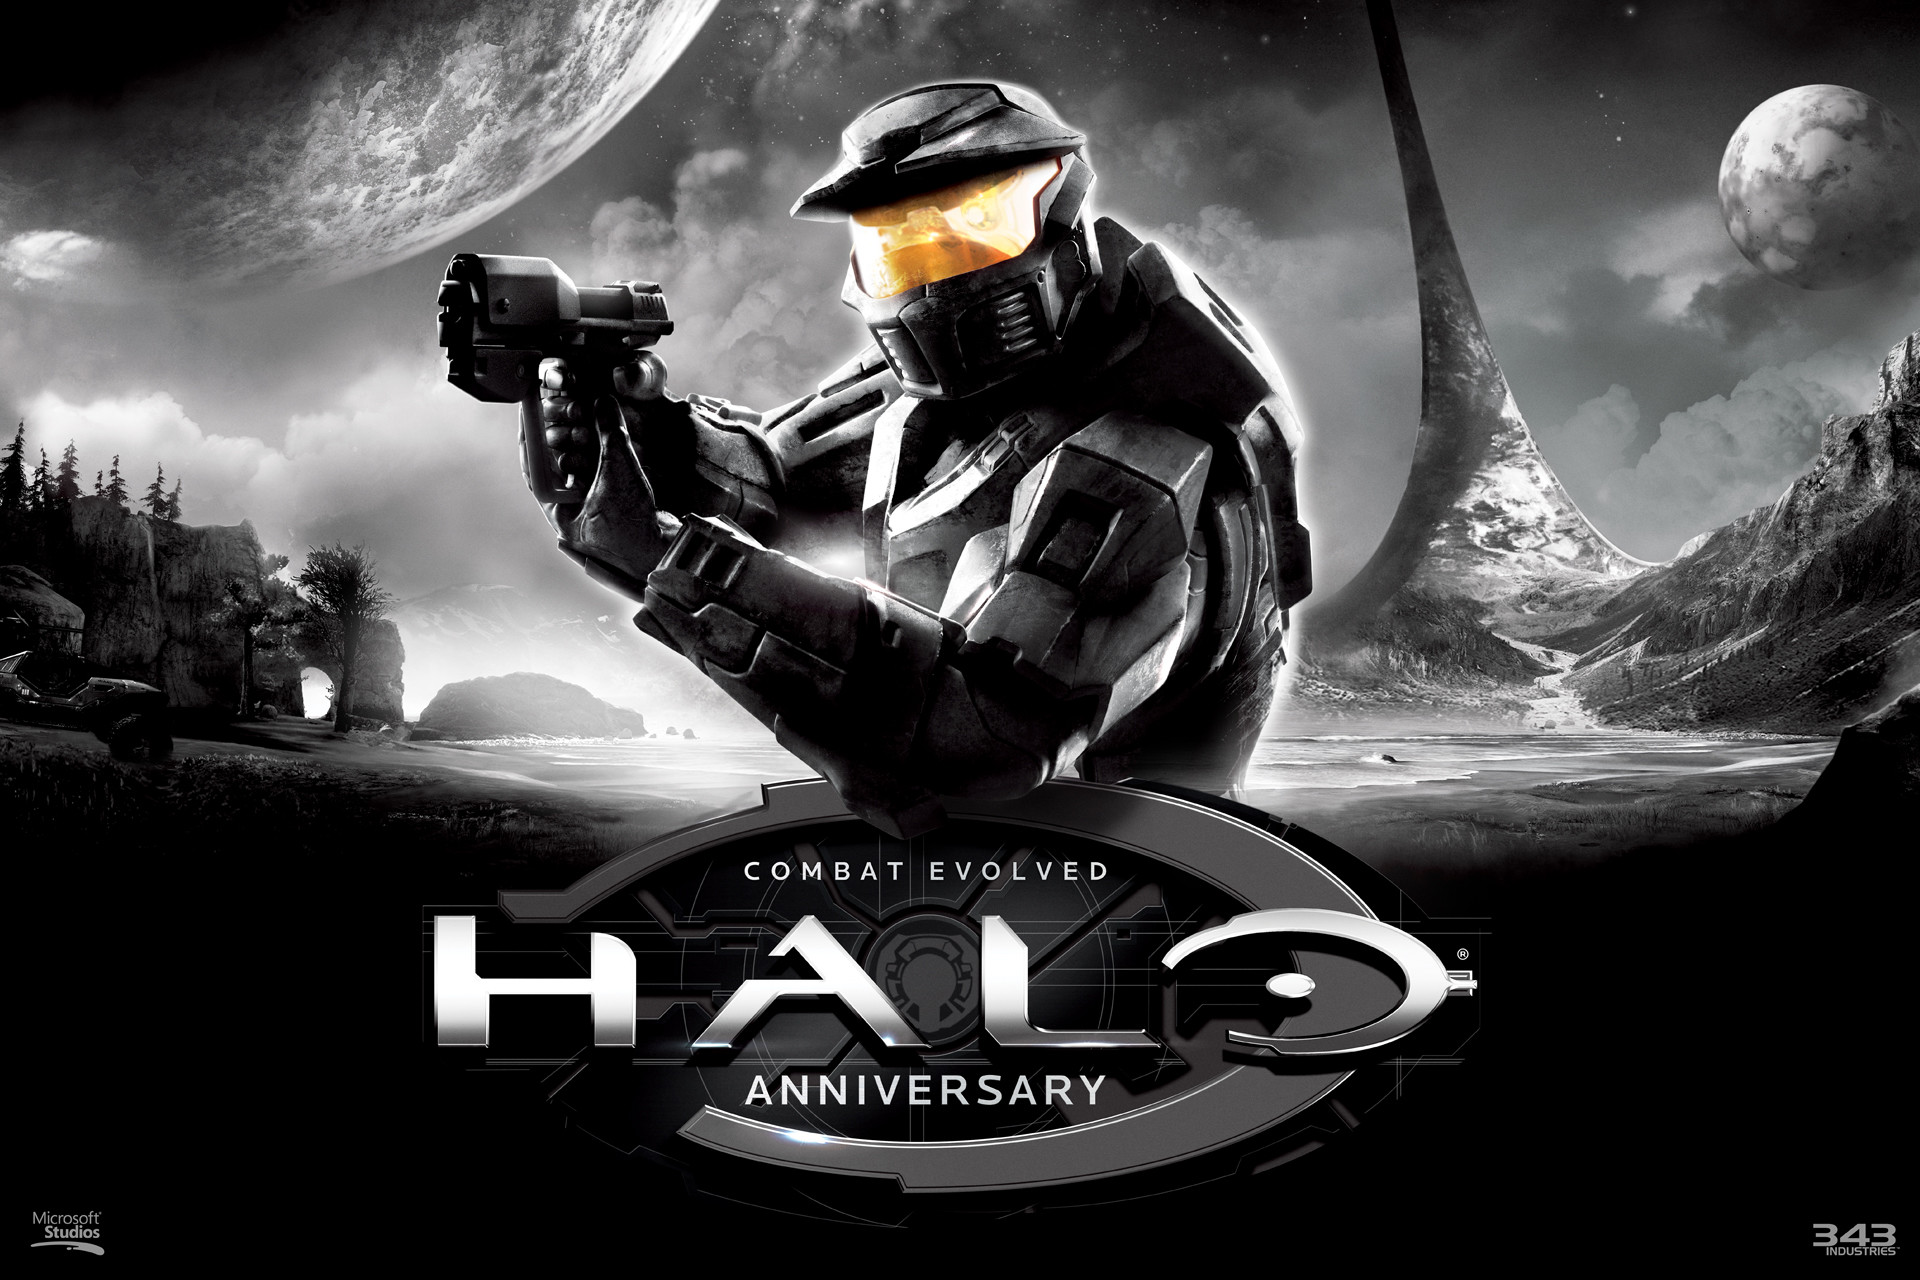 halo 2 anniversary wallpaper hd 92 images